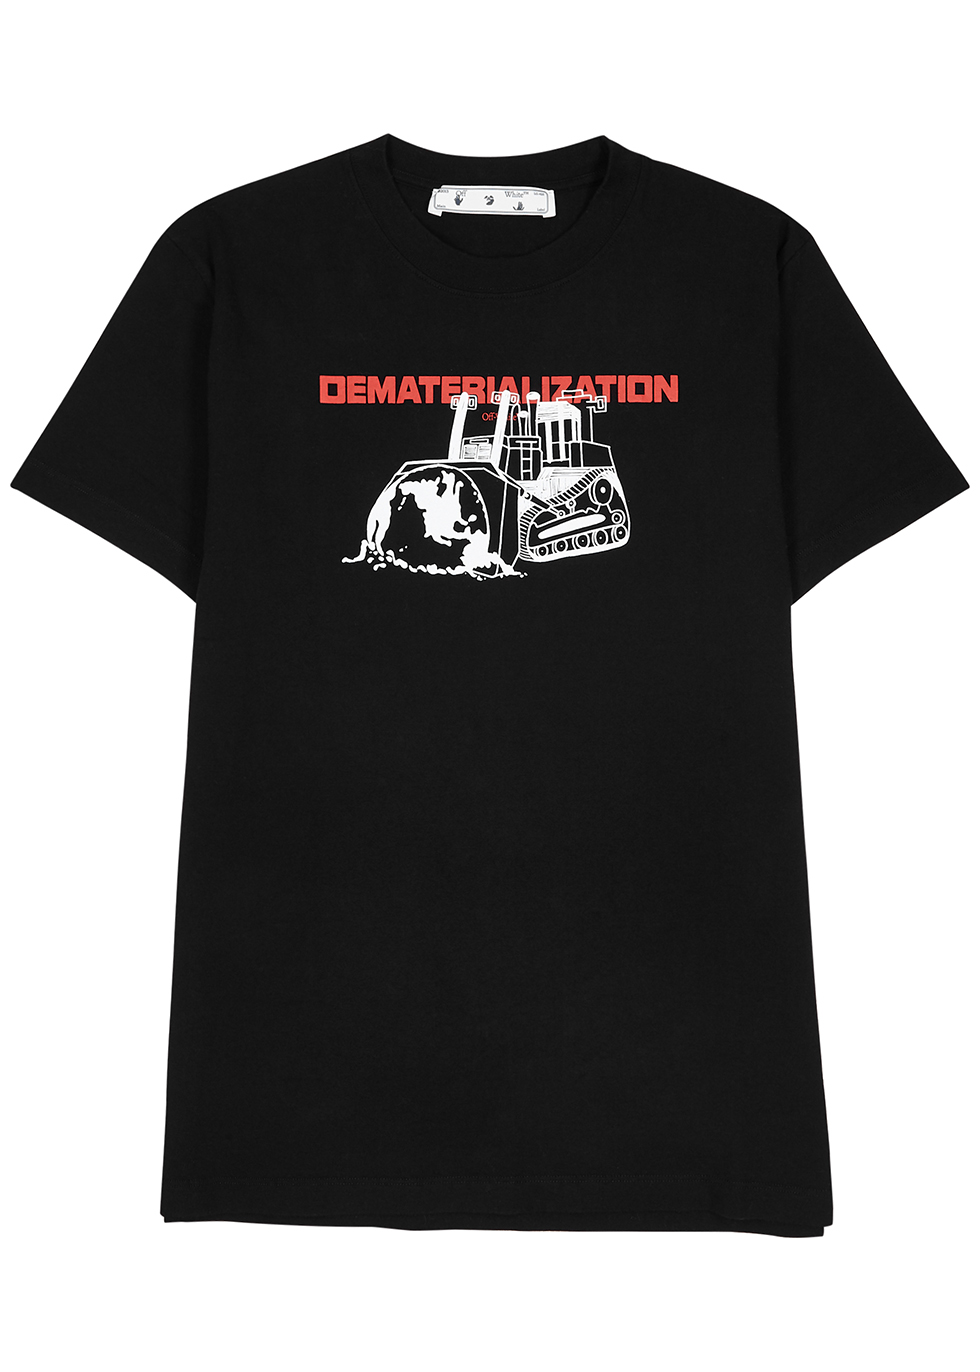 Dematerialization printed cotton T-shirt